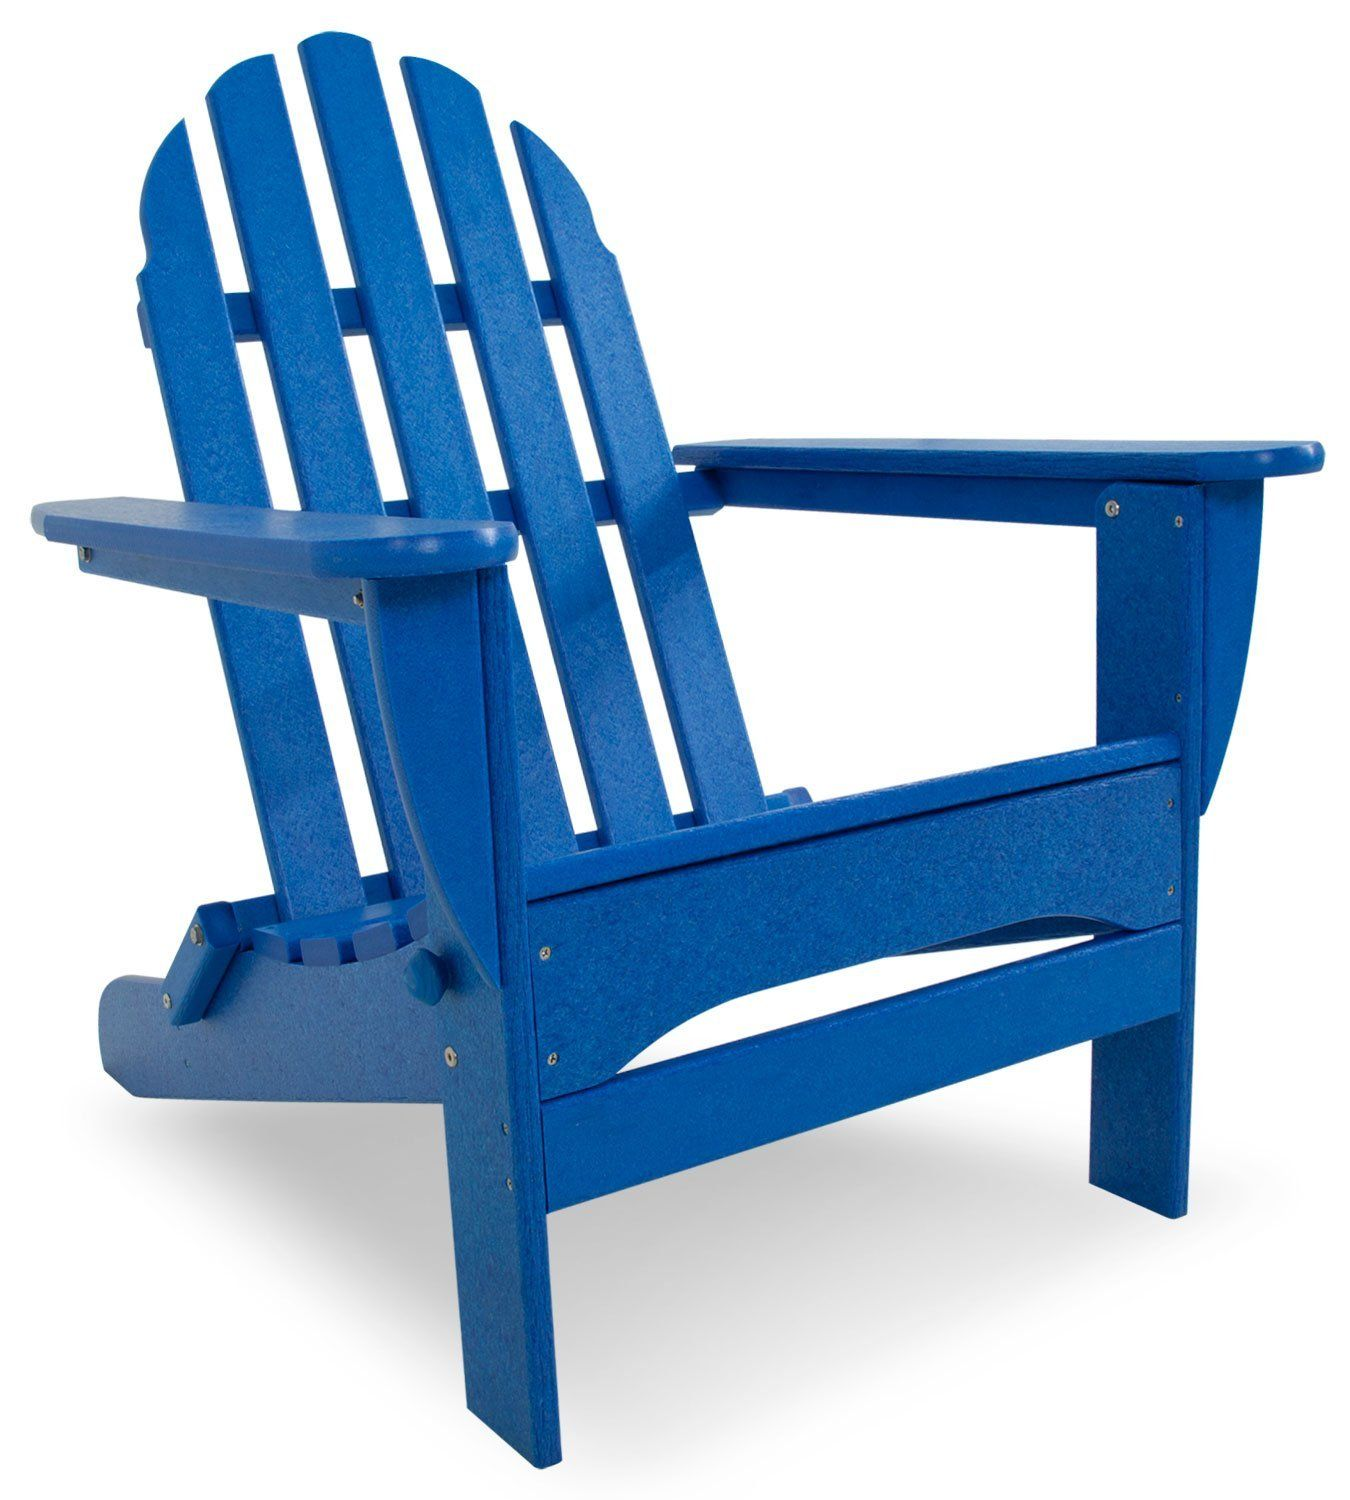 Polywood Outdoor Furniture Classic Adirondack